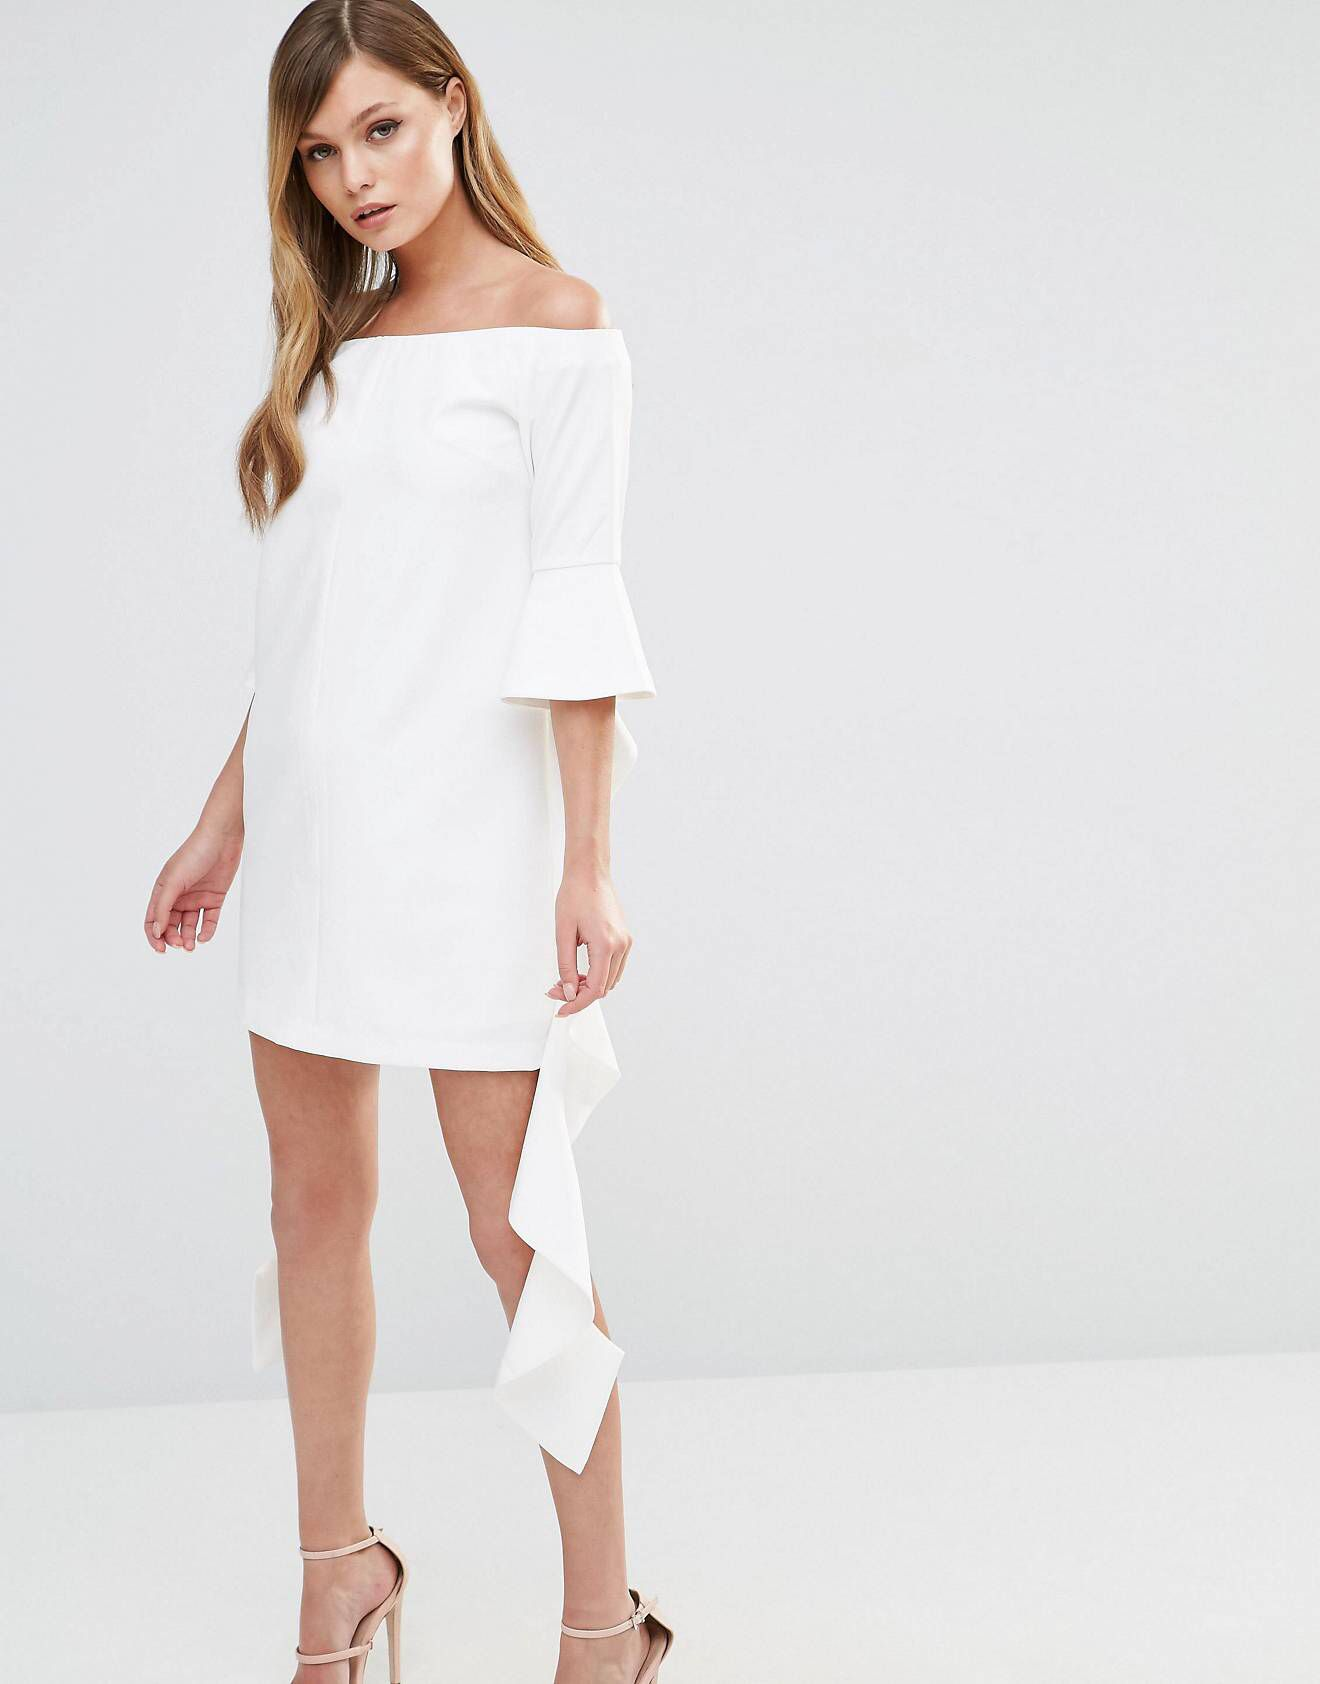 d2d771edb174 LOVE this from ASOS! Dark Pink Off Shoulder Mini Dress with Frill Sleeve  Little White ...